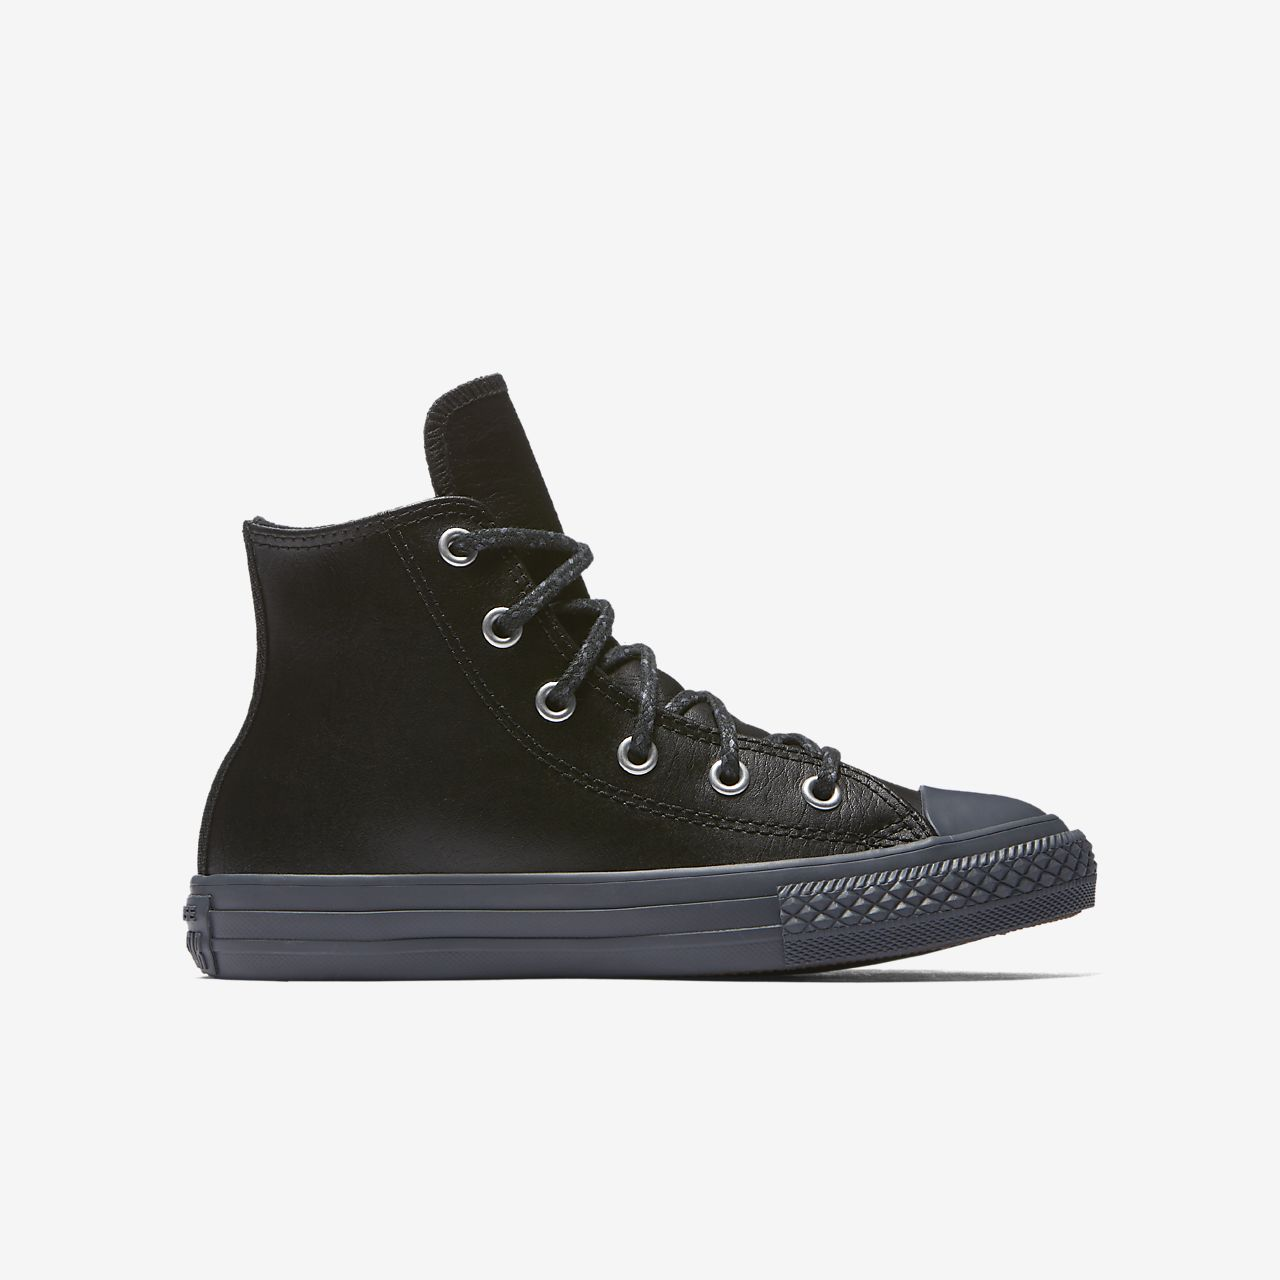 Converse Chuck Taylor All Star Leather Hi TI19290